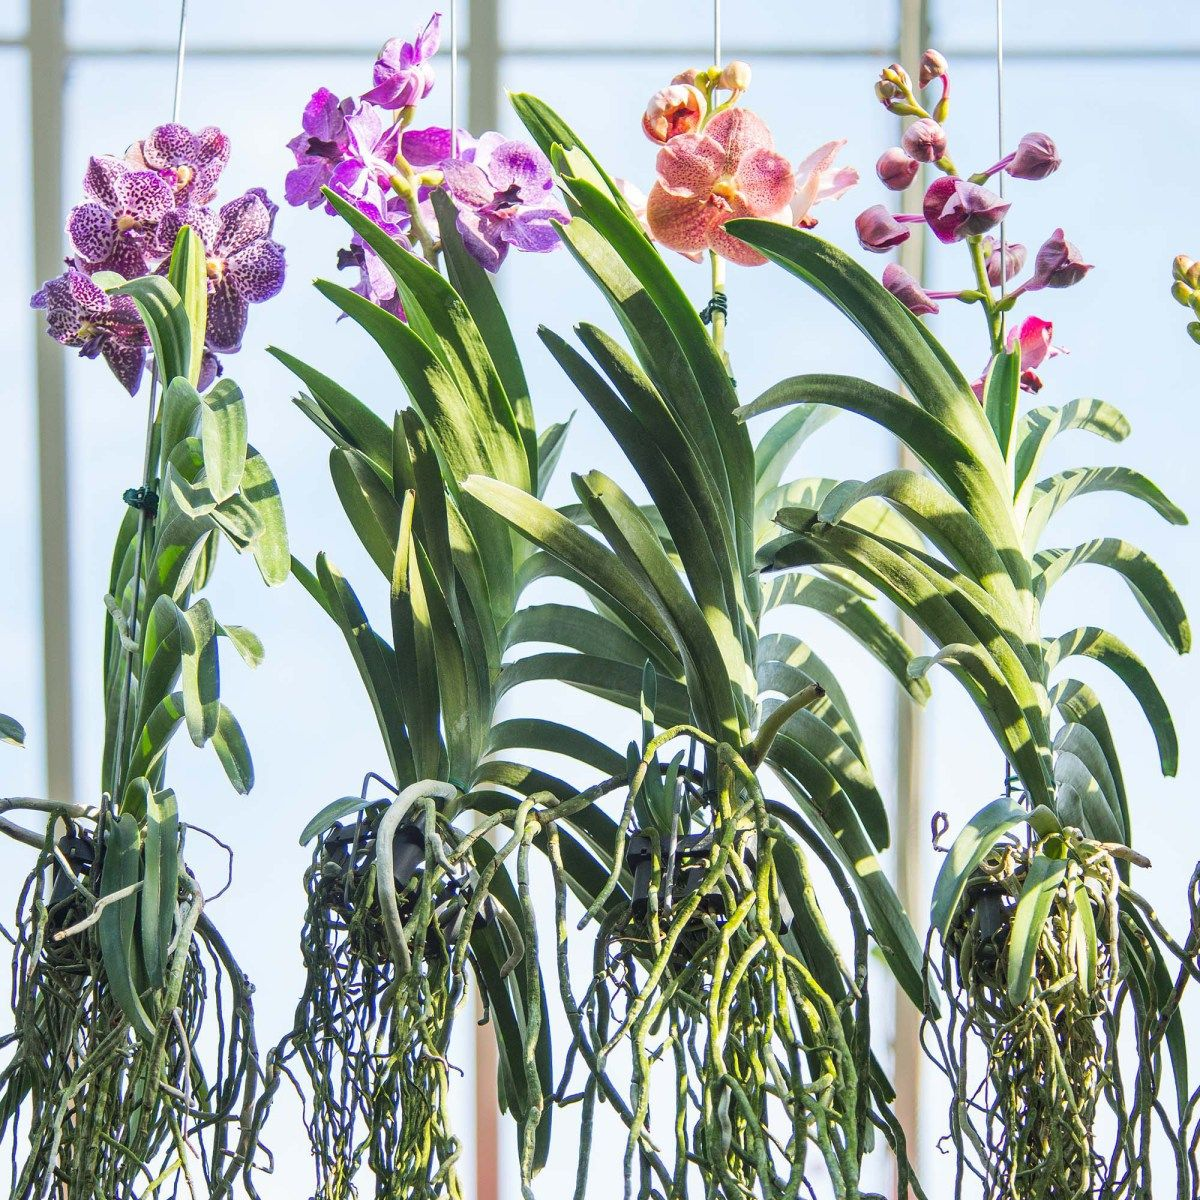 Test your orchid iquhow do orchid roots work plants pinterest